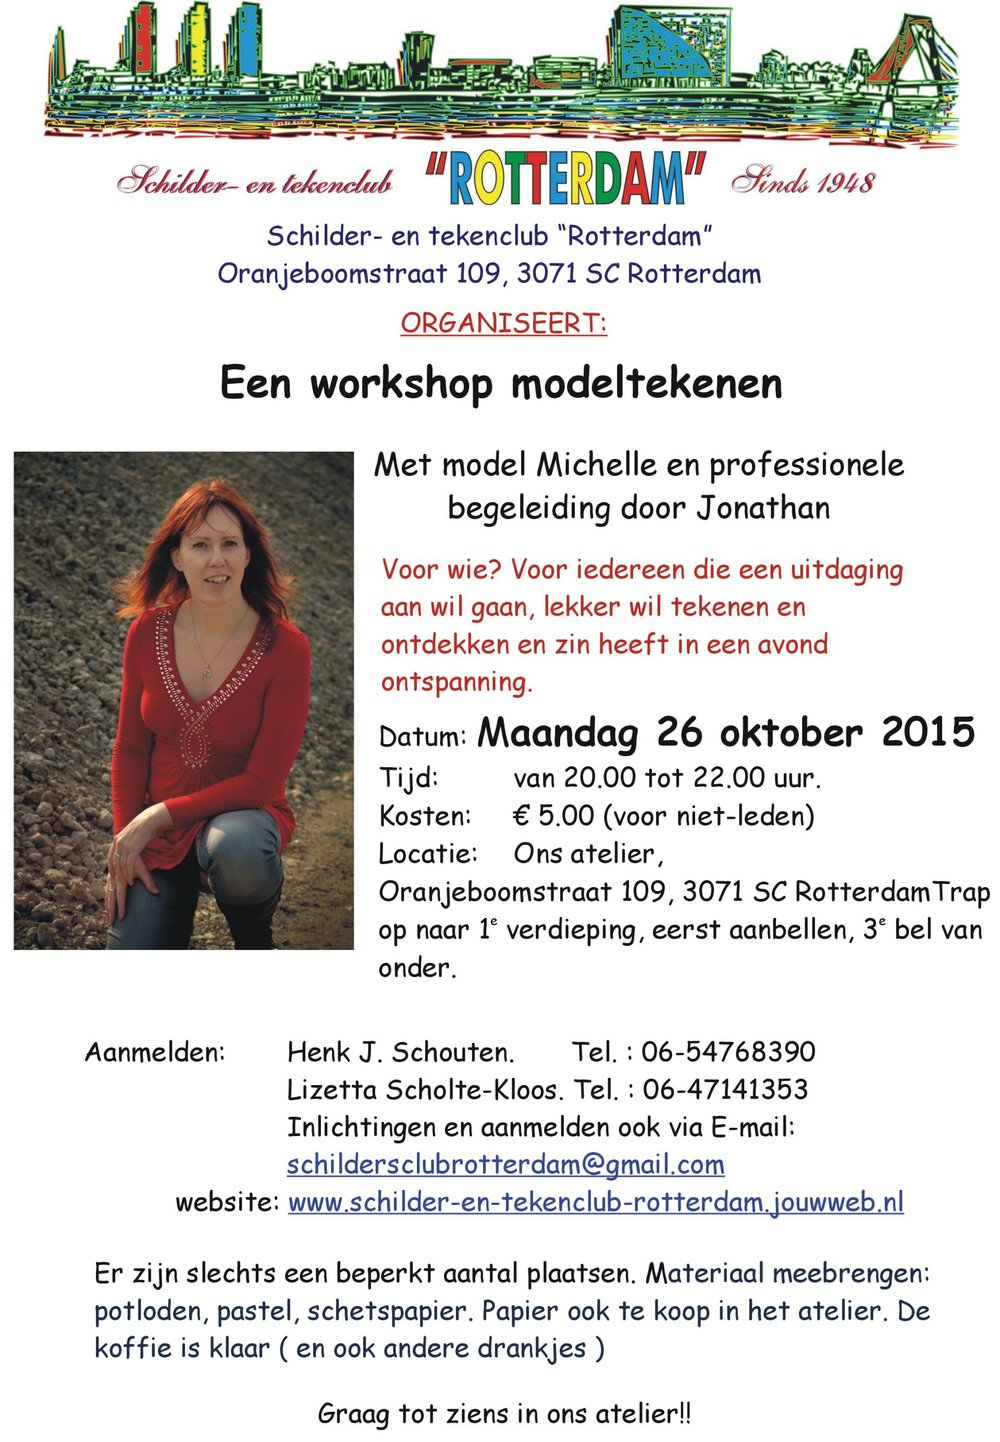 Workshopmodeltekenen2015-26102015-1.jpg